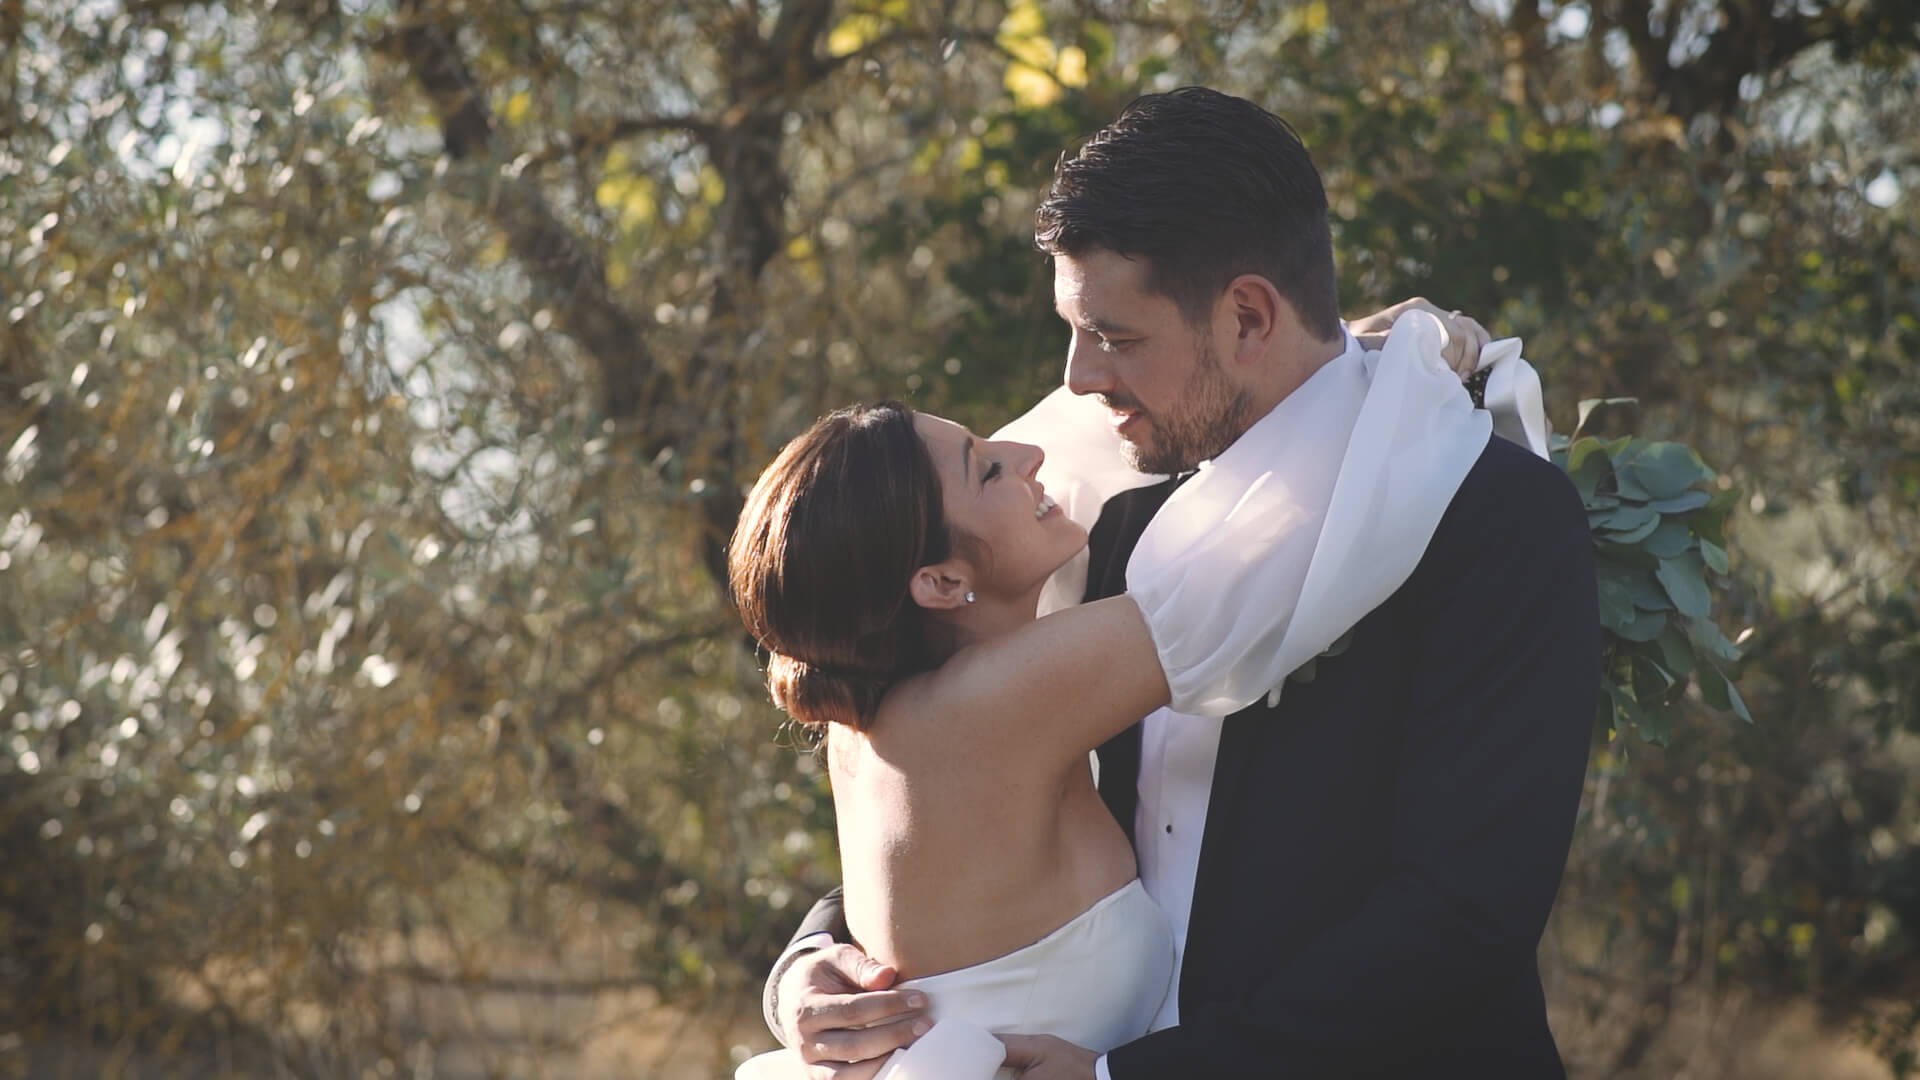 Wedding Film in Chianti Tuscany 1